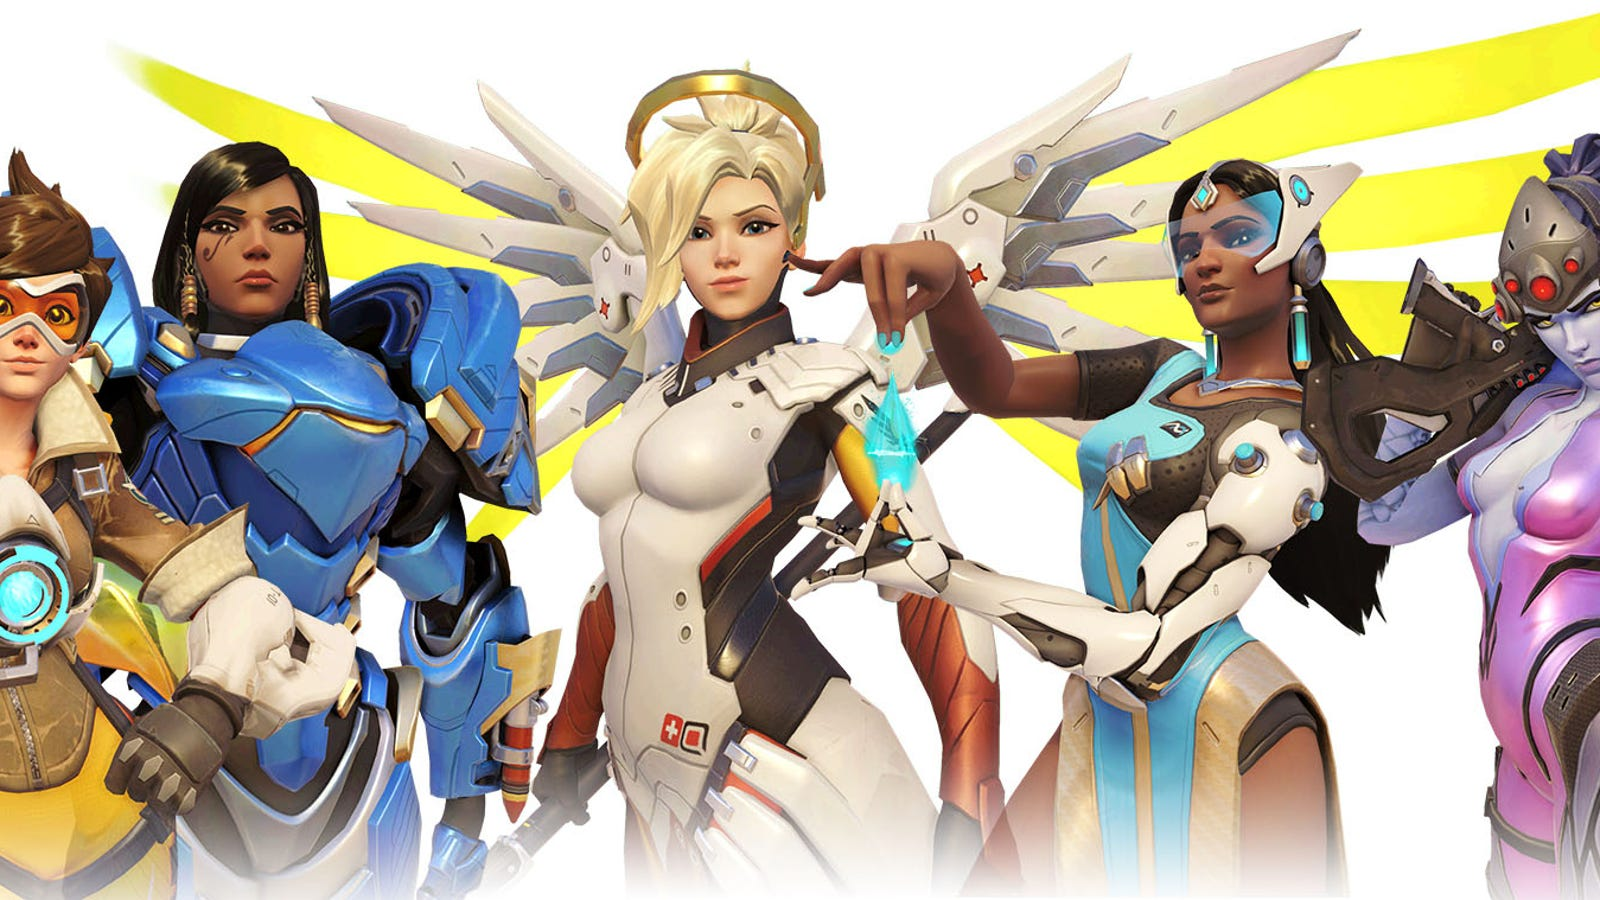 Internal Blizzard Memo Details Efforts To Hire, Retain More Women